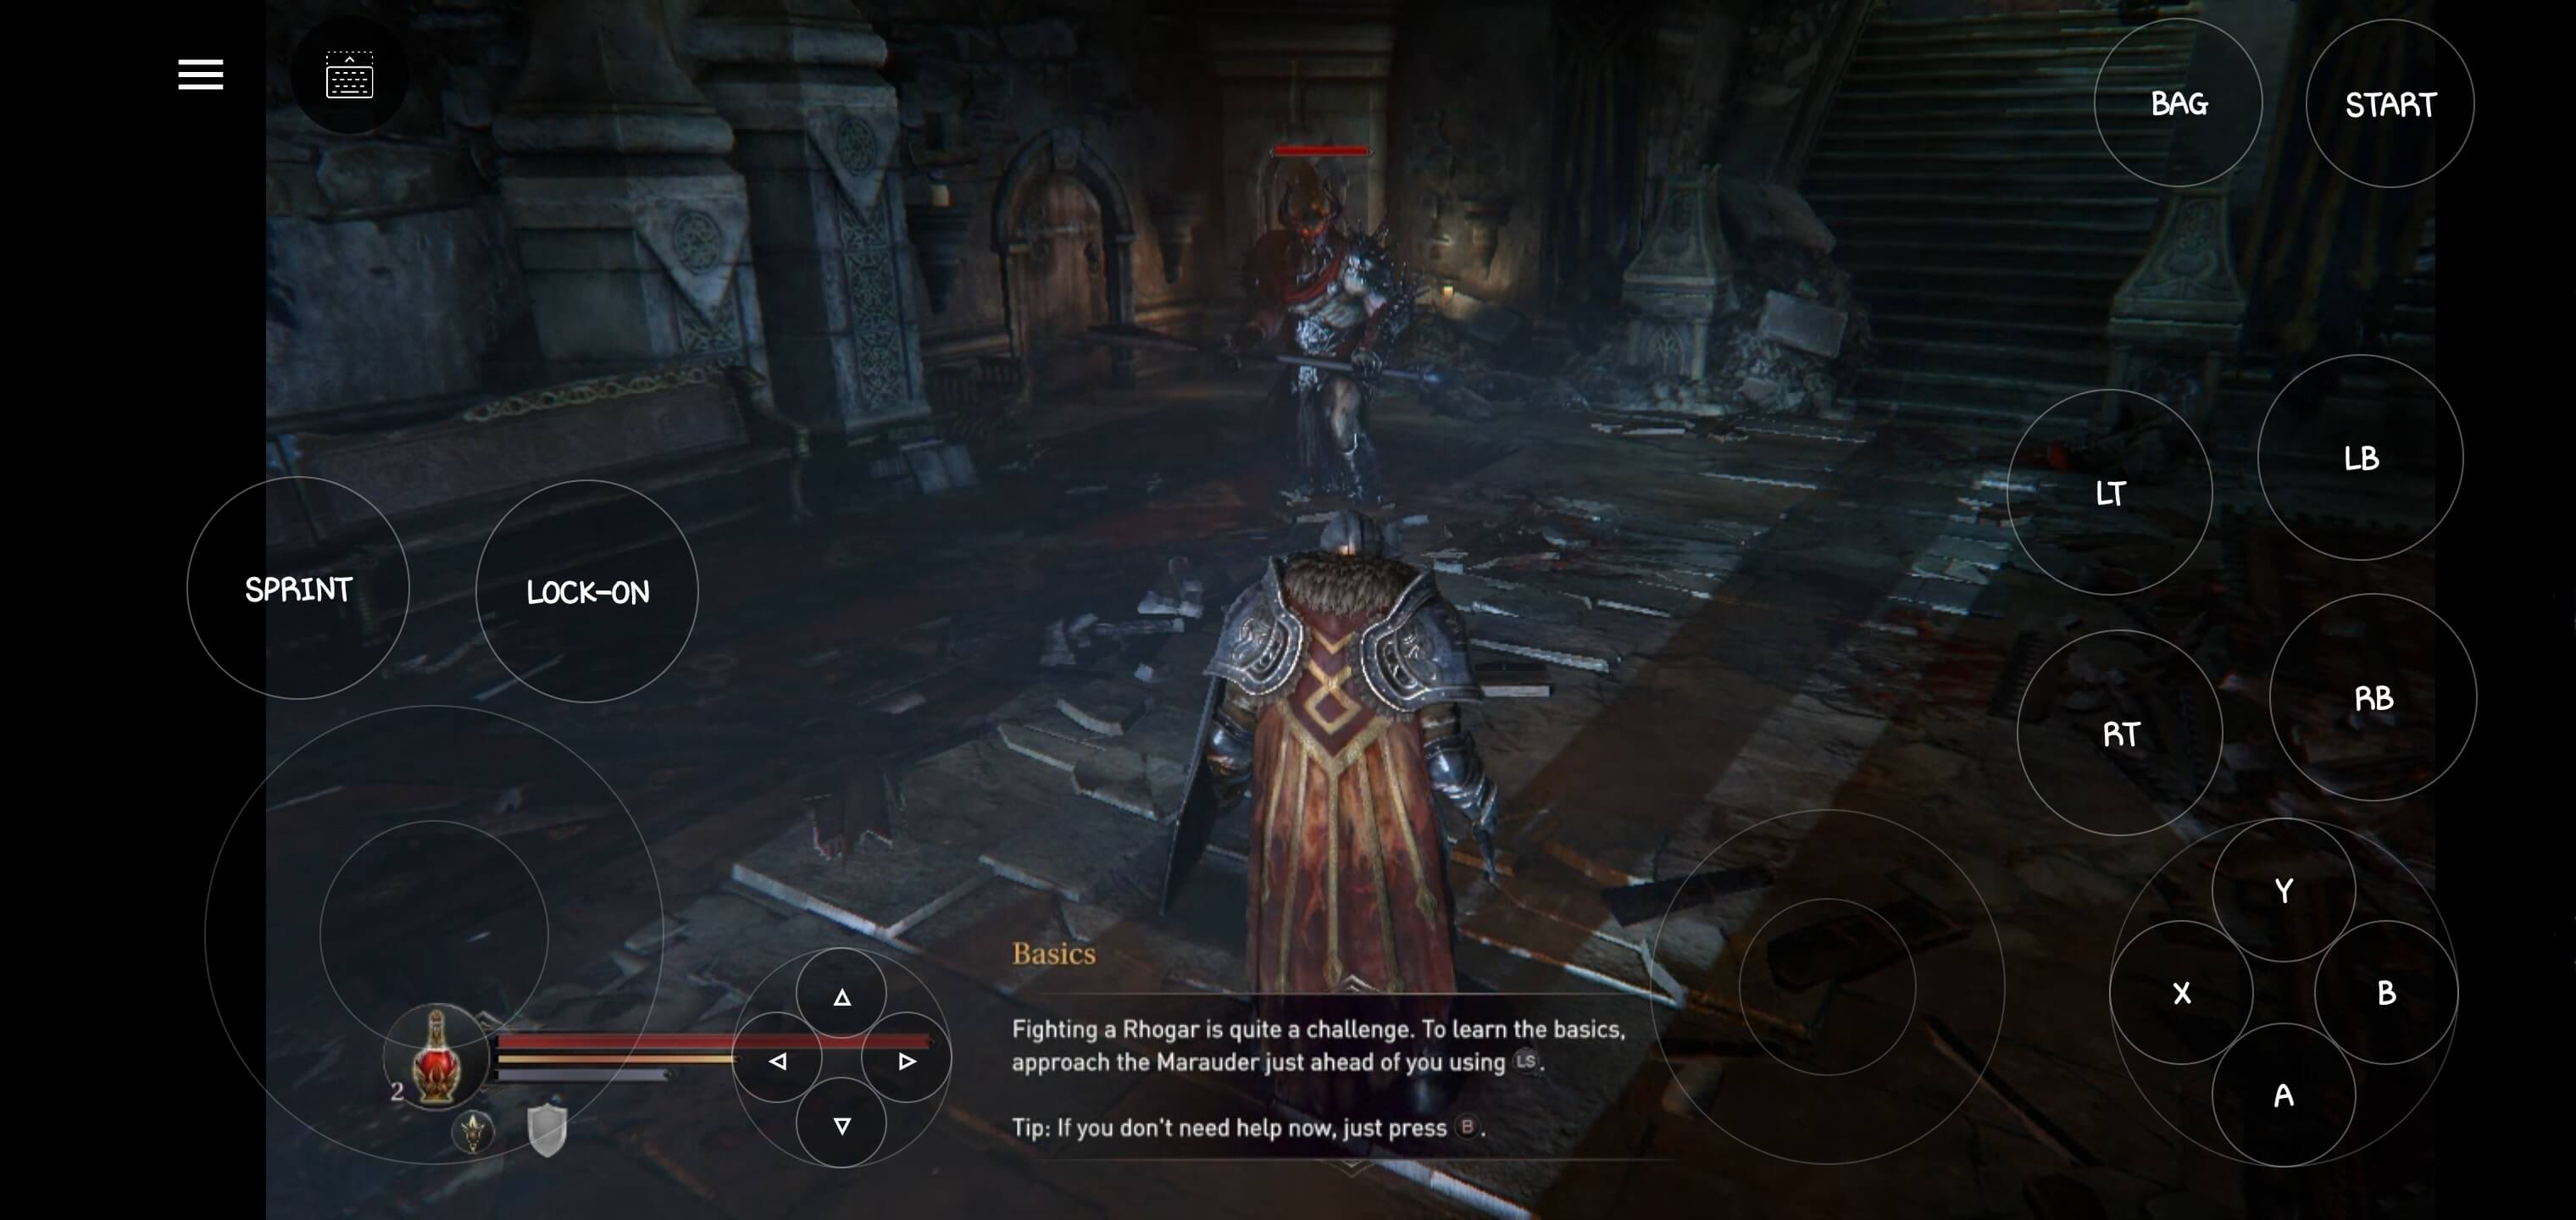 Lords of the Fallen gameplay quality on Vortex